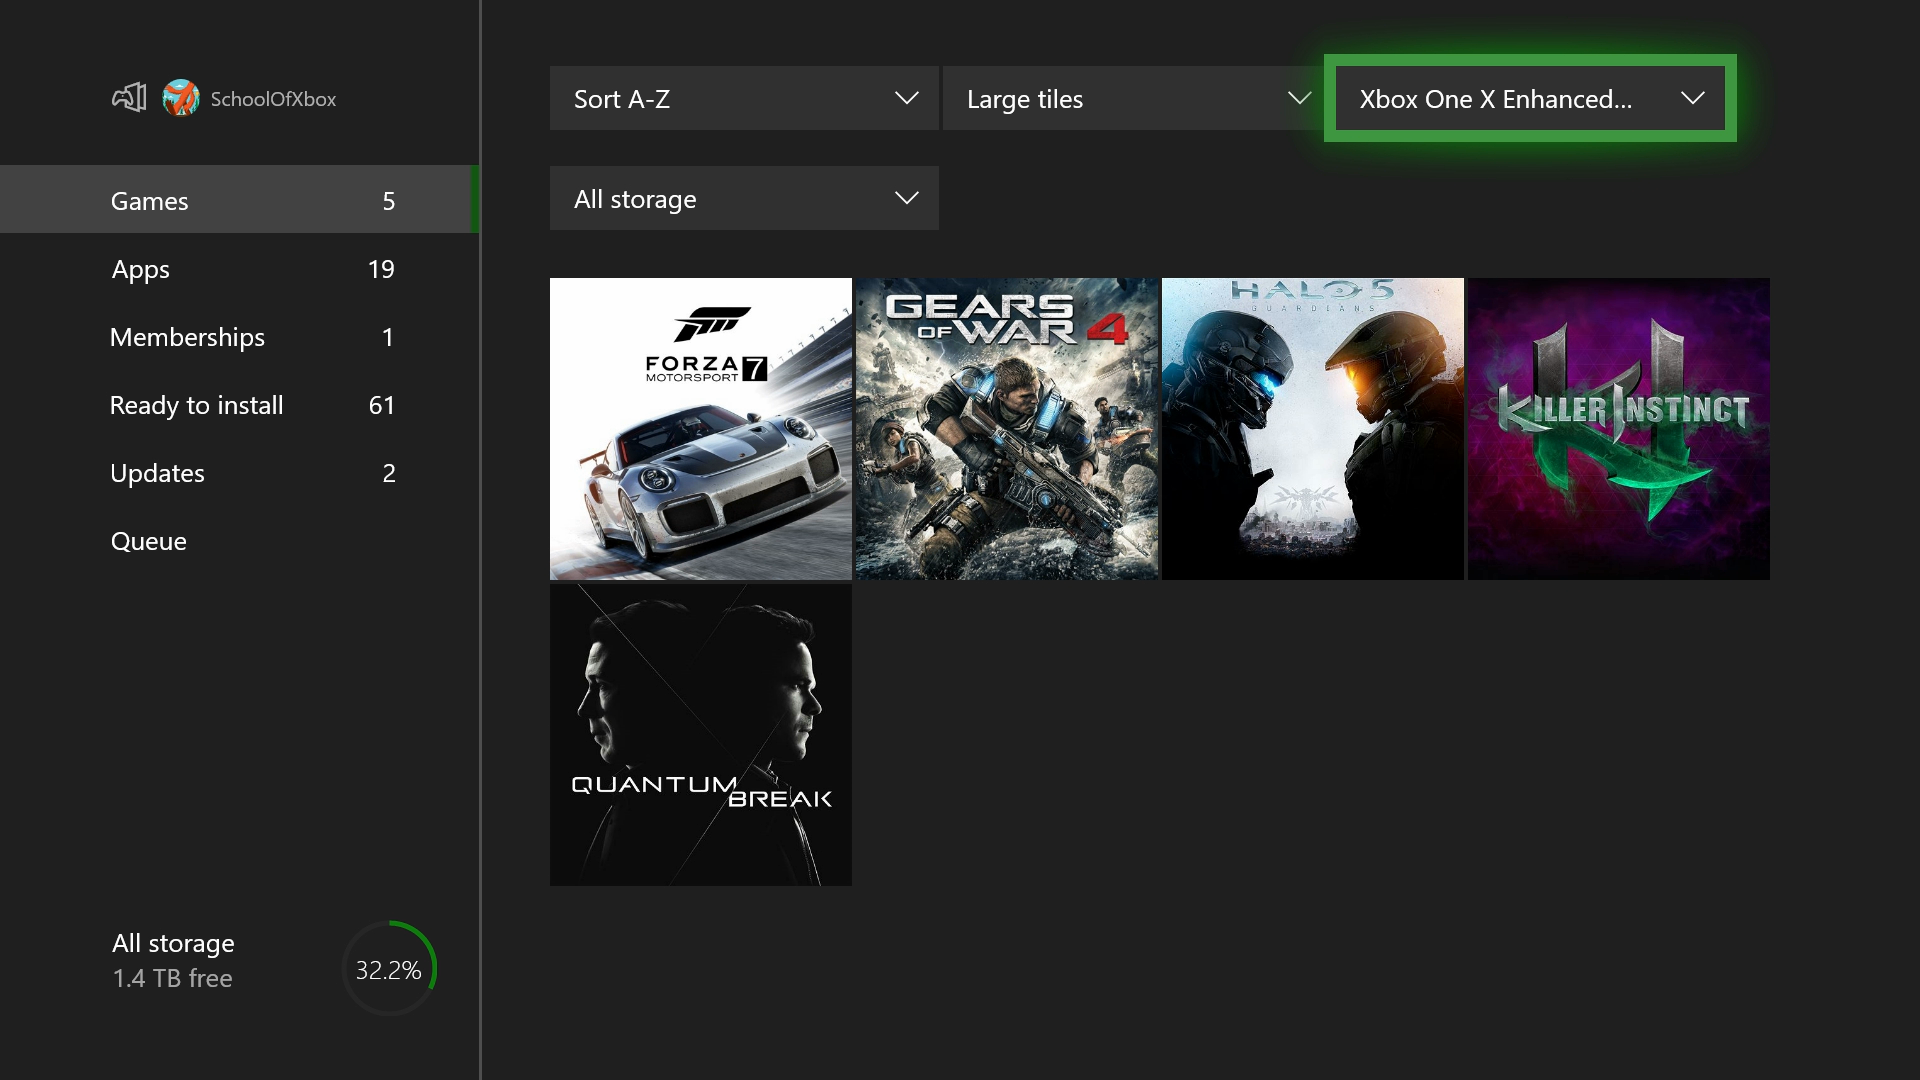 How Do I Know If My Games Are Updated For Xbox One X